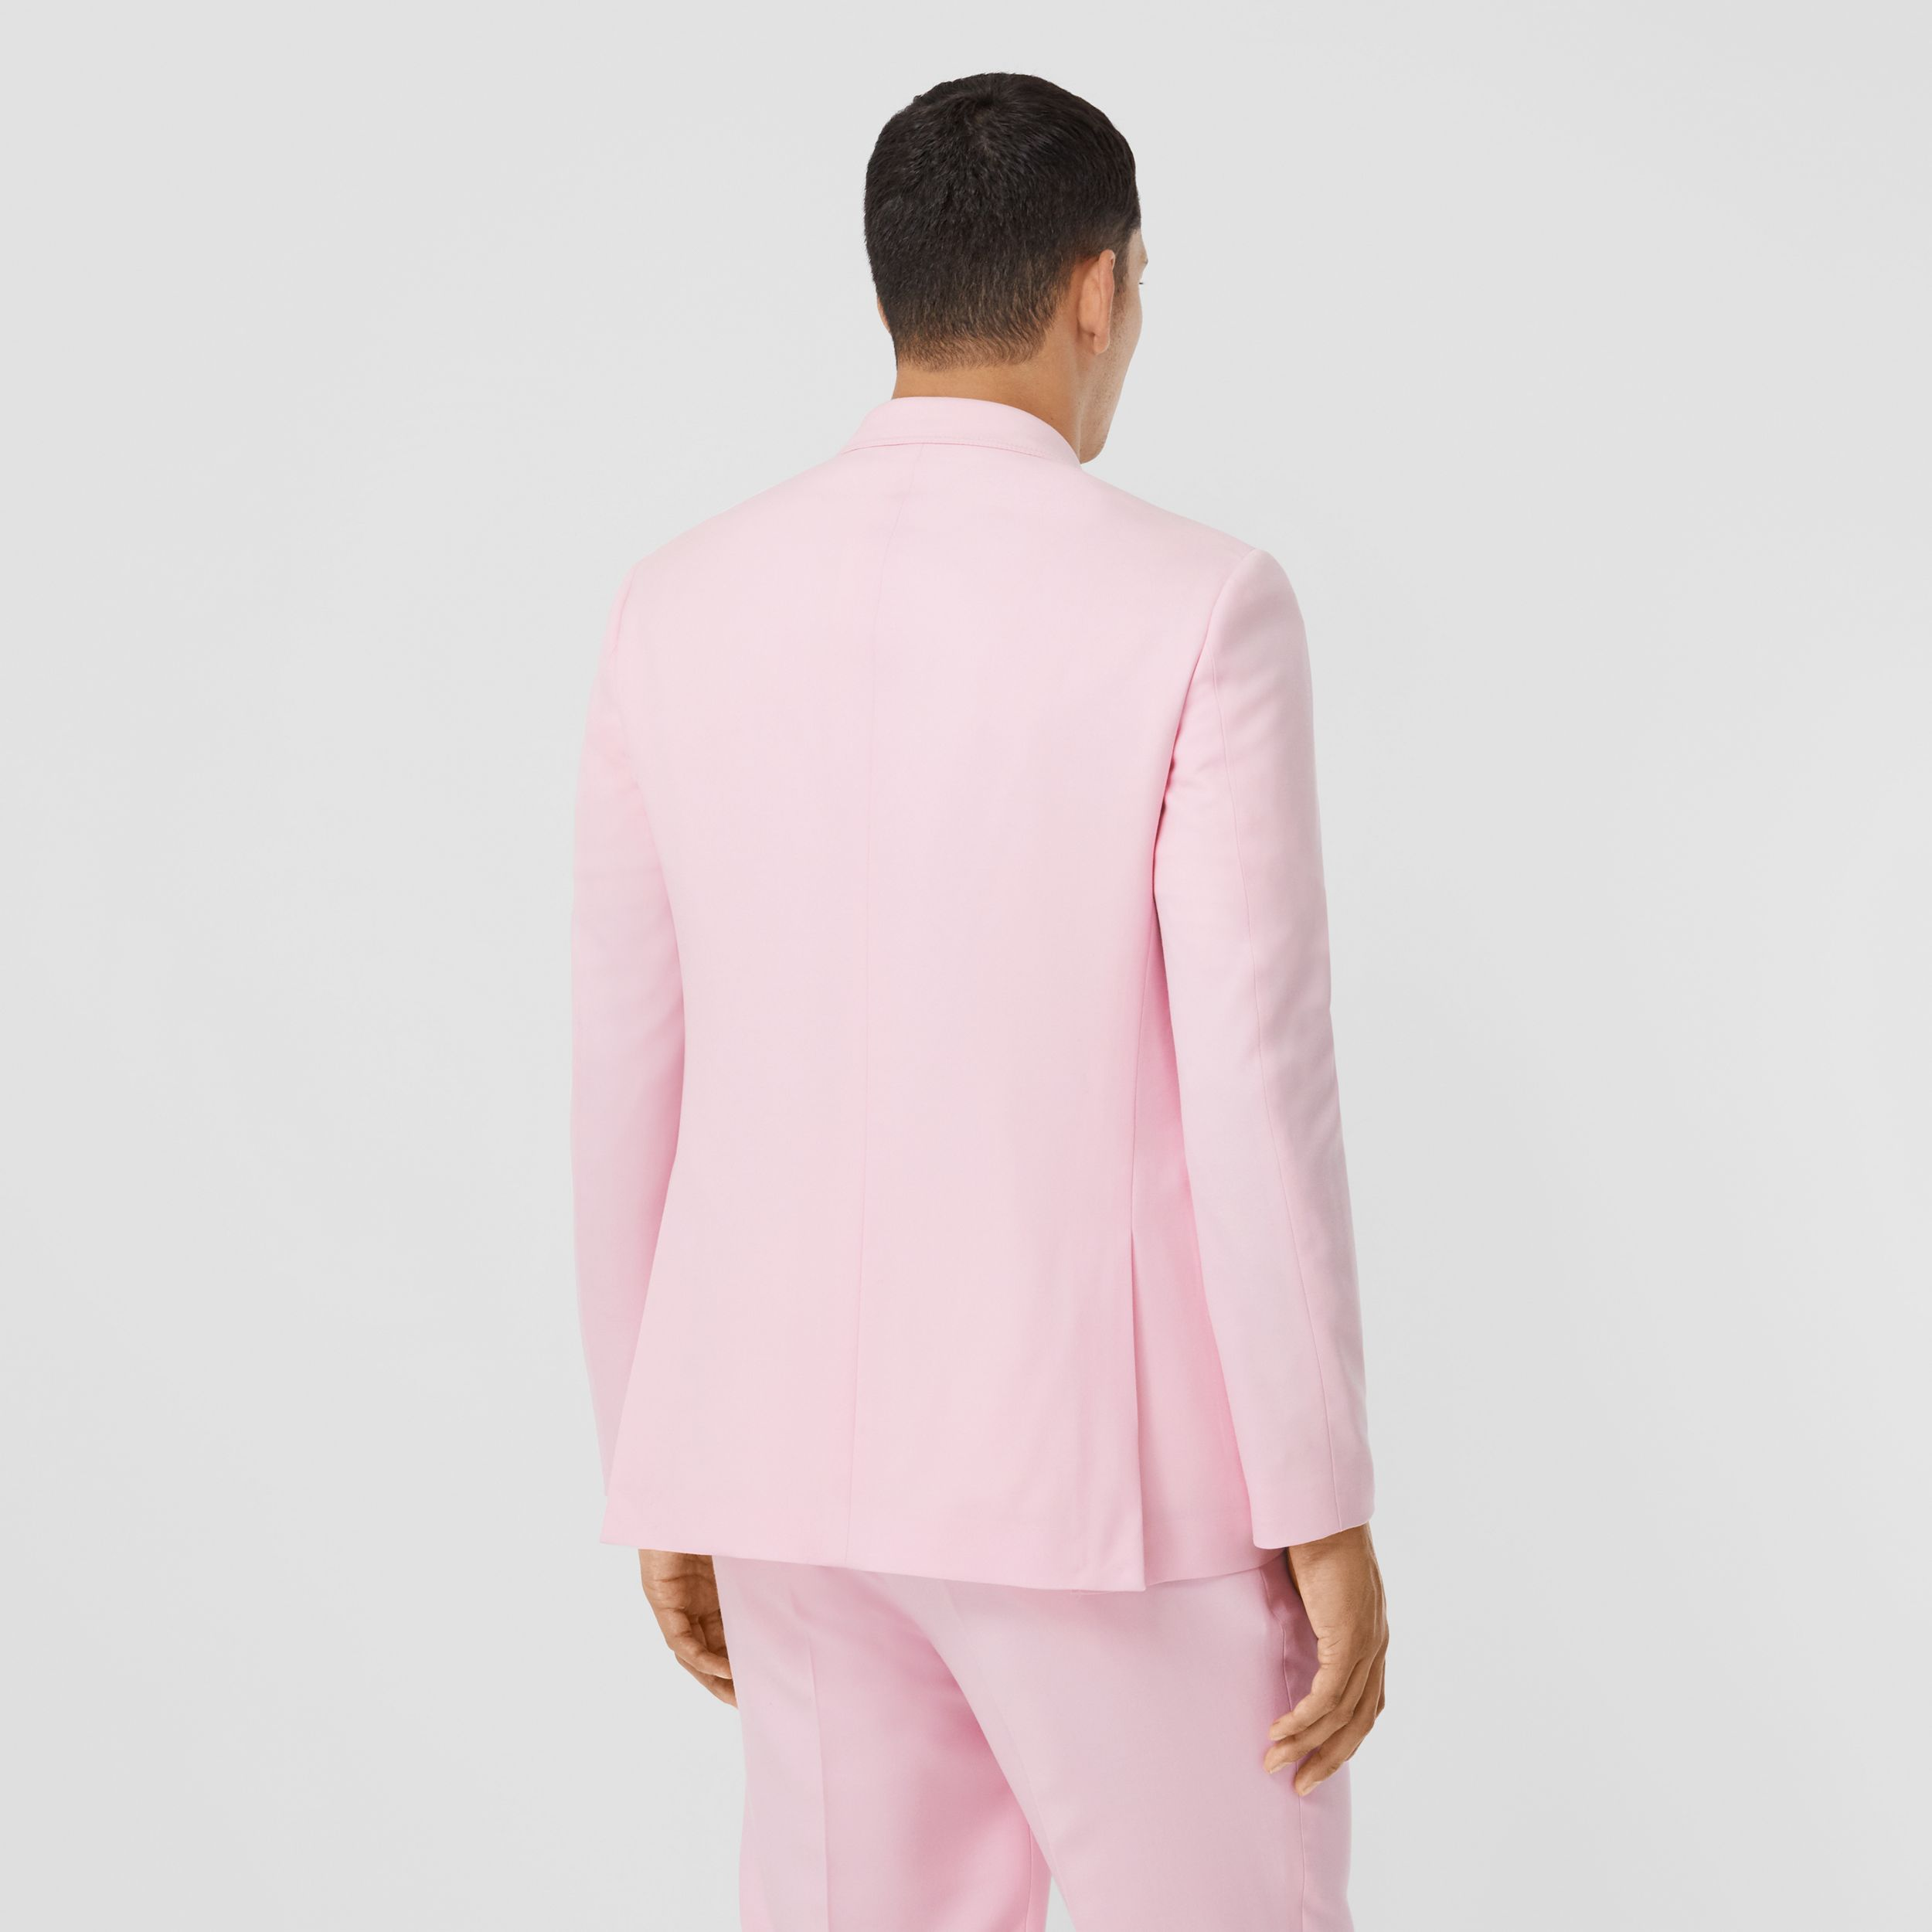 Slim Fit Press-stud Tumbled Wool Tailored Jacket in Candy Pink - Men | Burberry - 3